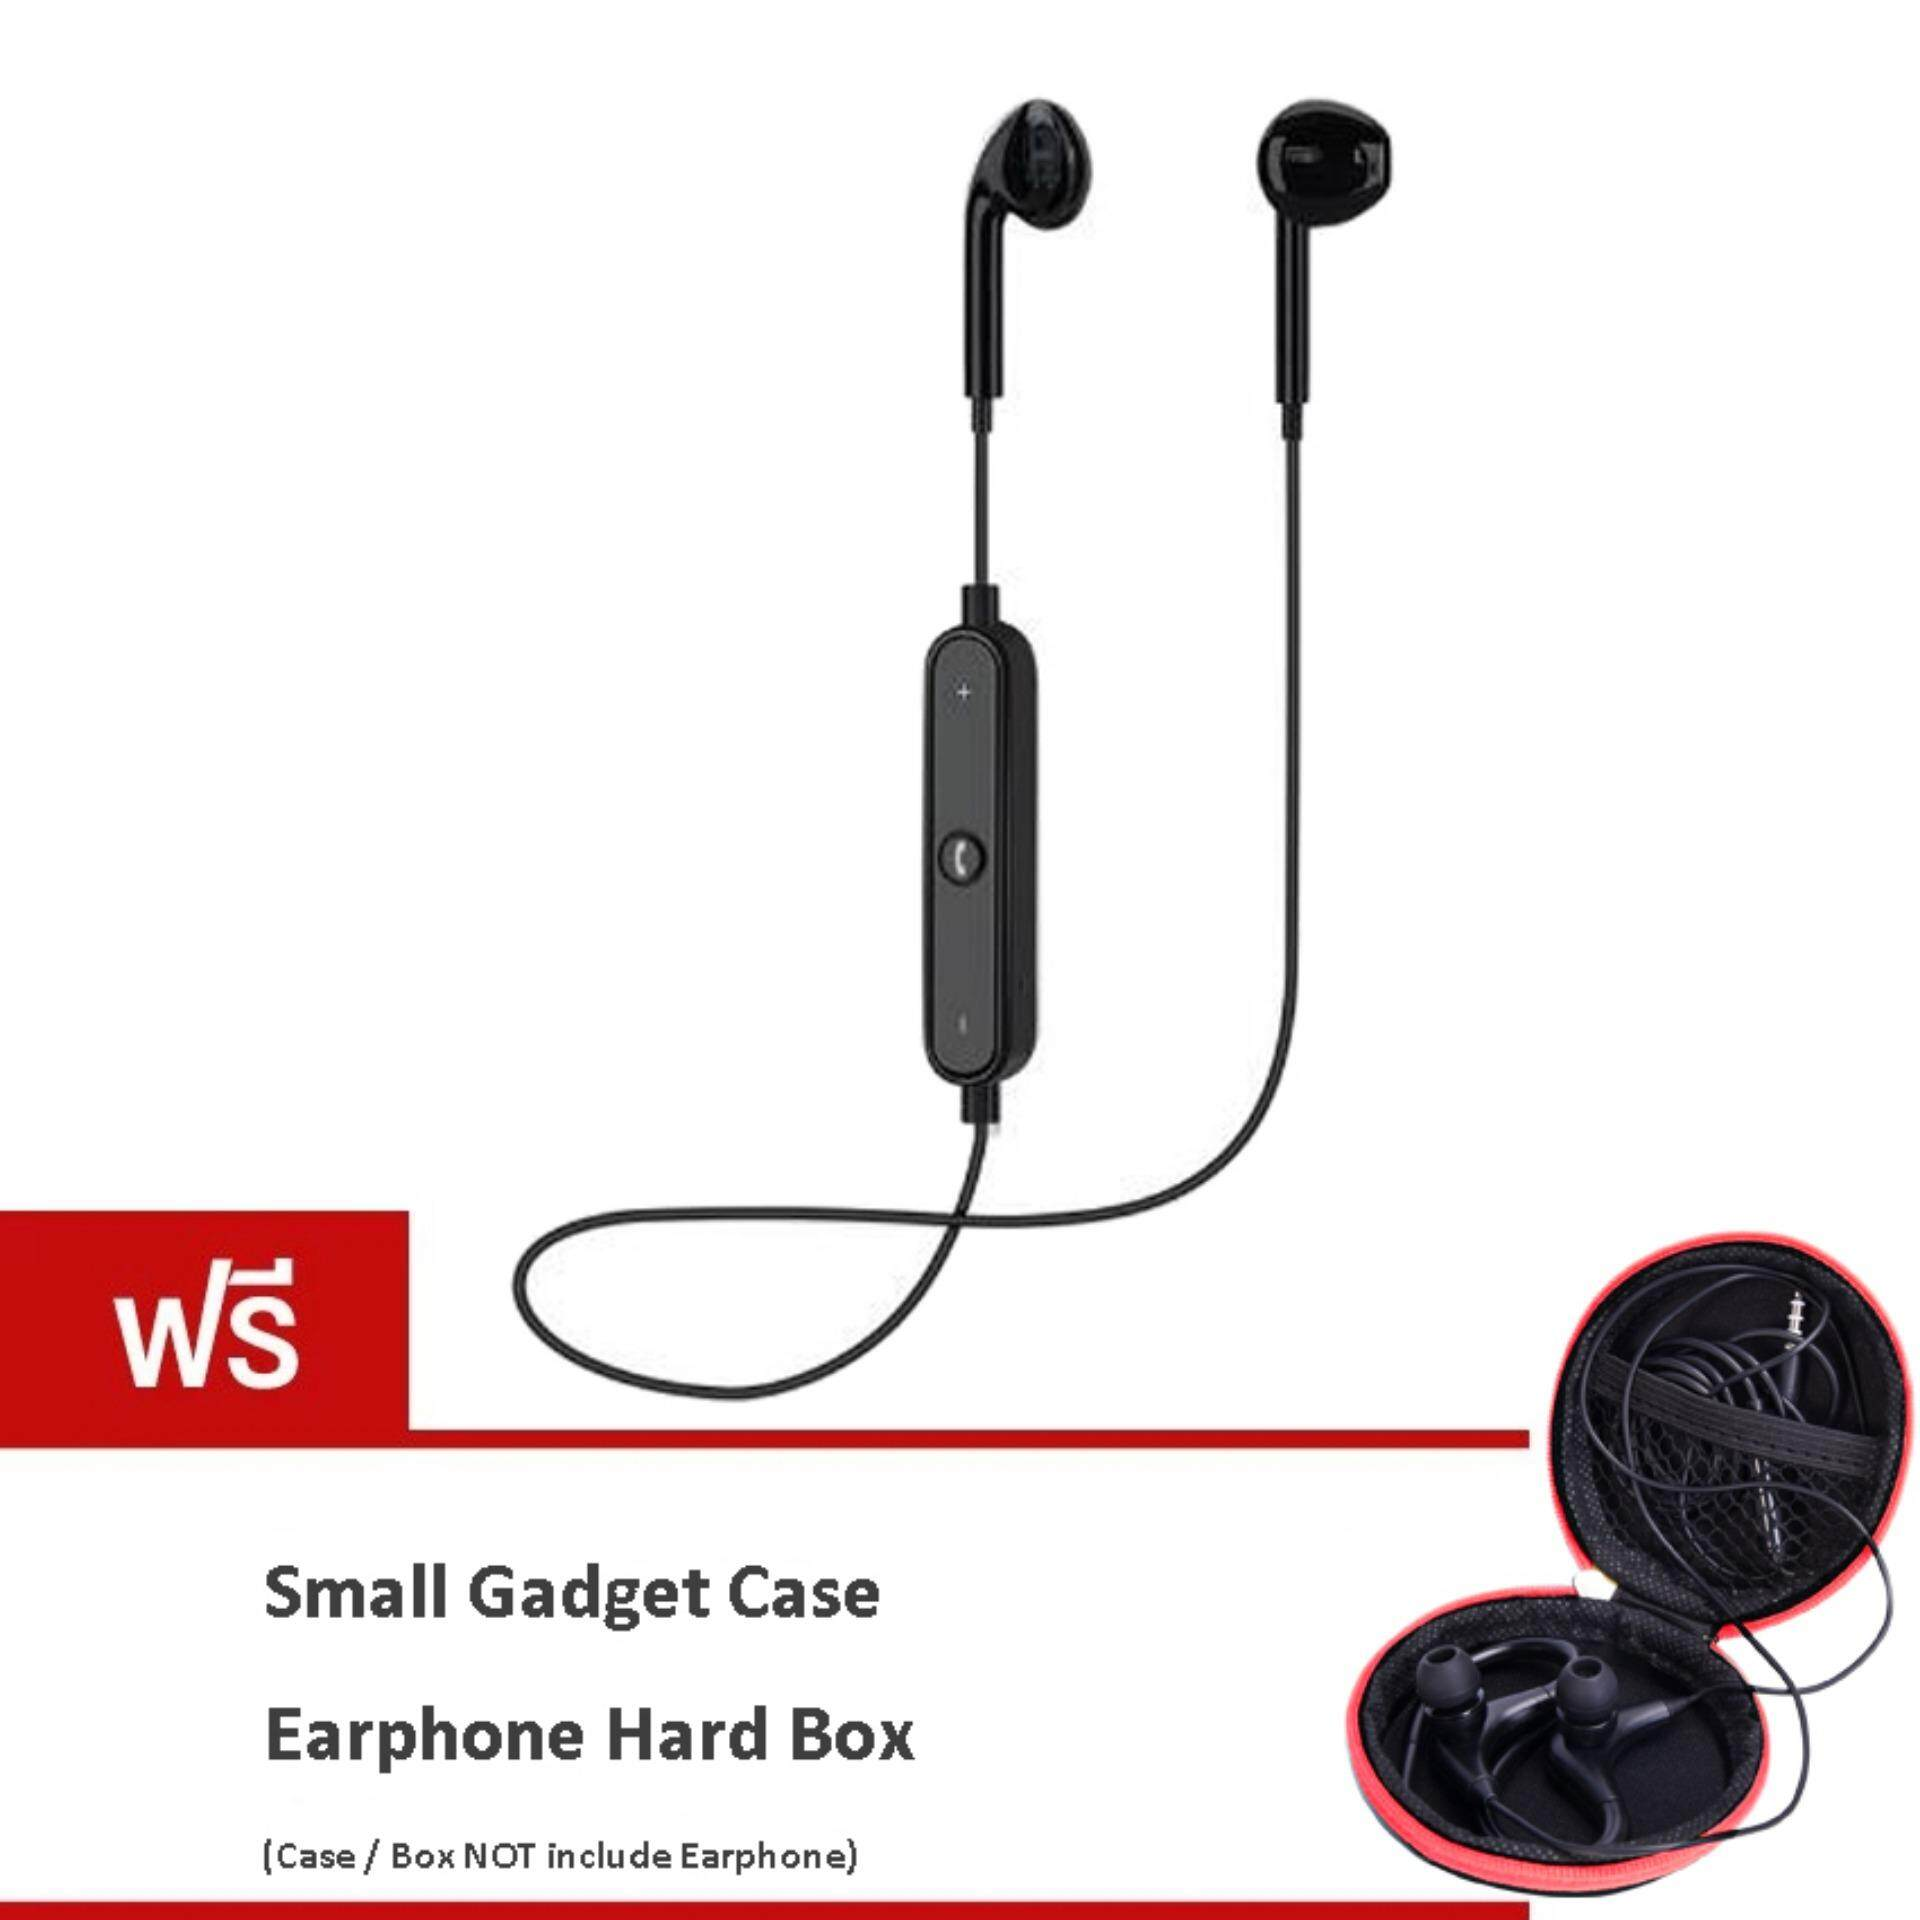 Headphone Super Bass Premiun Quality Merah Update Daftar Harga Ovleng Ov X11 With Mic S6 Wireless Sports Headphones Bluetooth 41 Headsets Sport Stereo Cancelling Earphone For Iphone Sumsung Android Malaysia